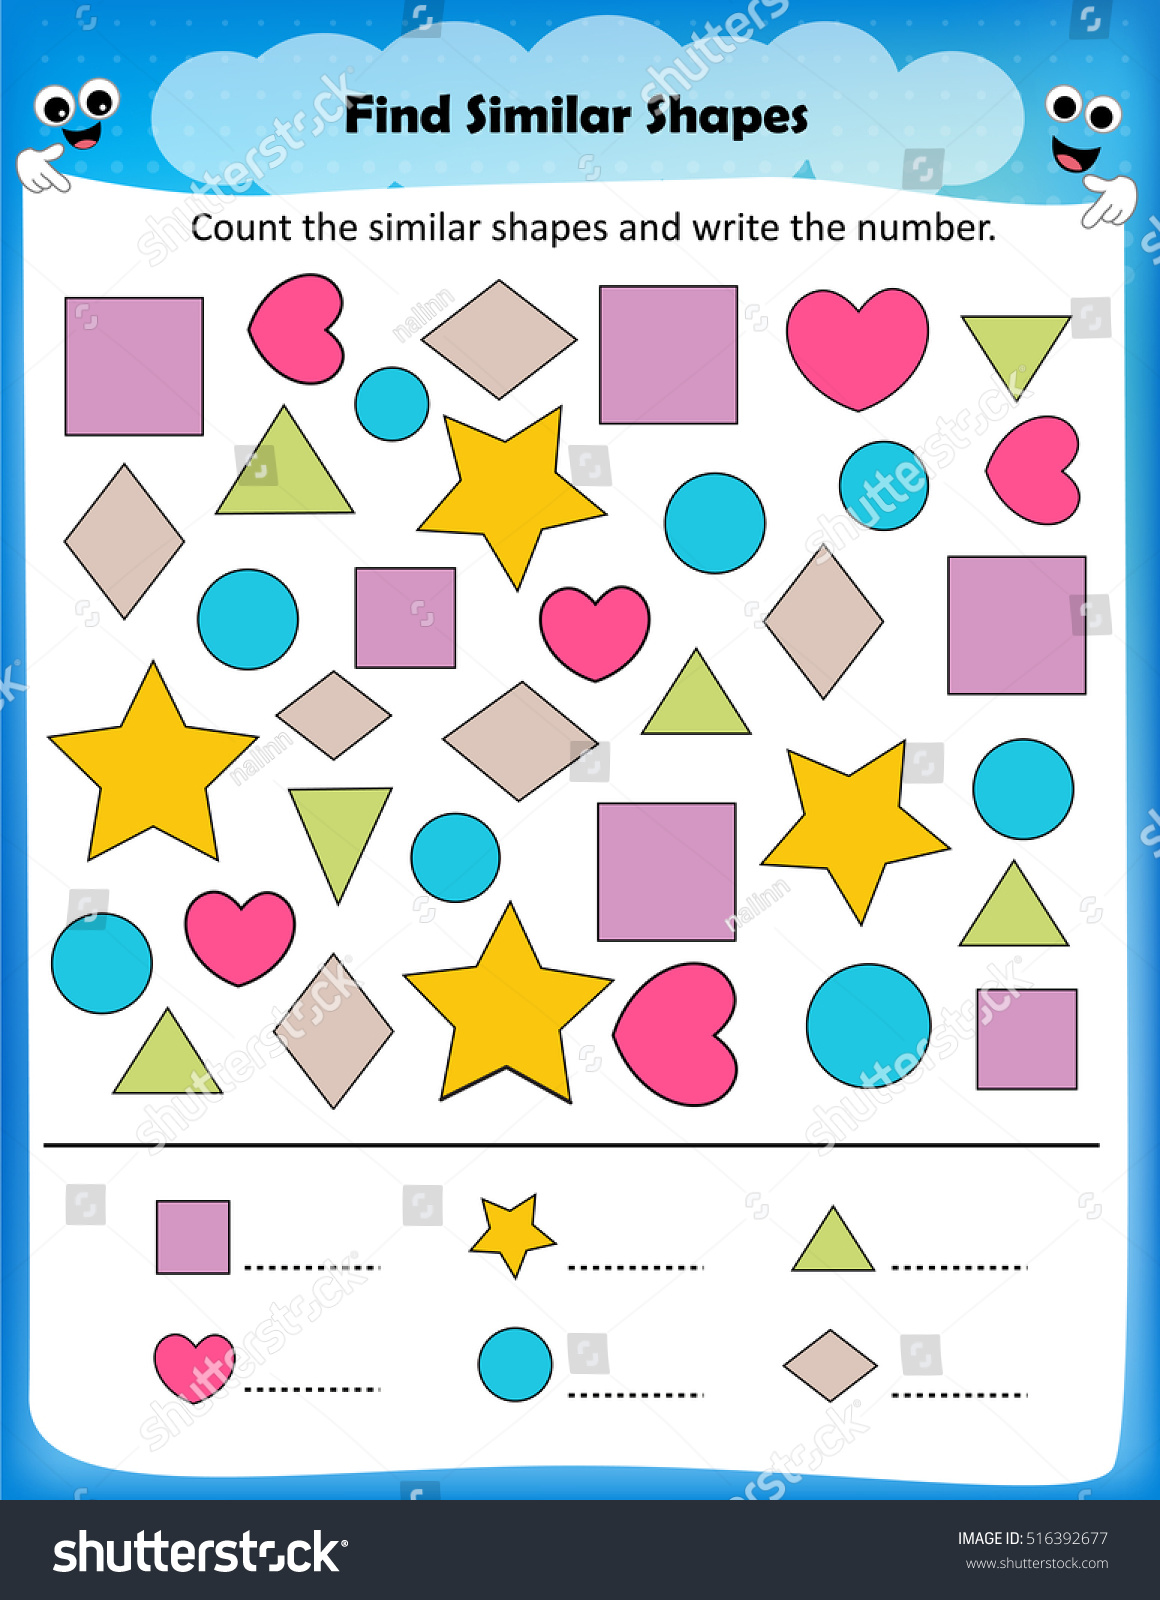 Worksheet Count Similar Shapes Worksheet Preschool Stock